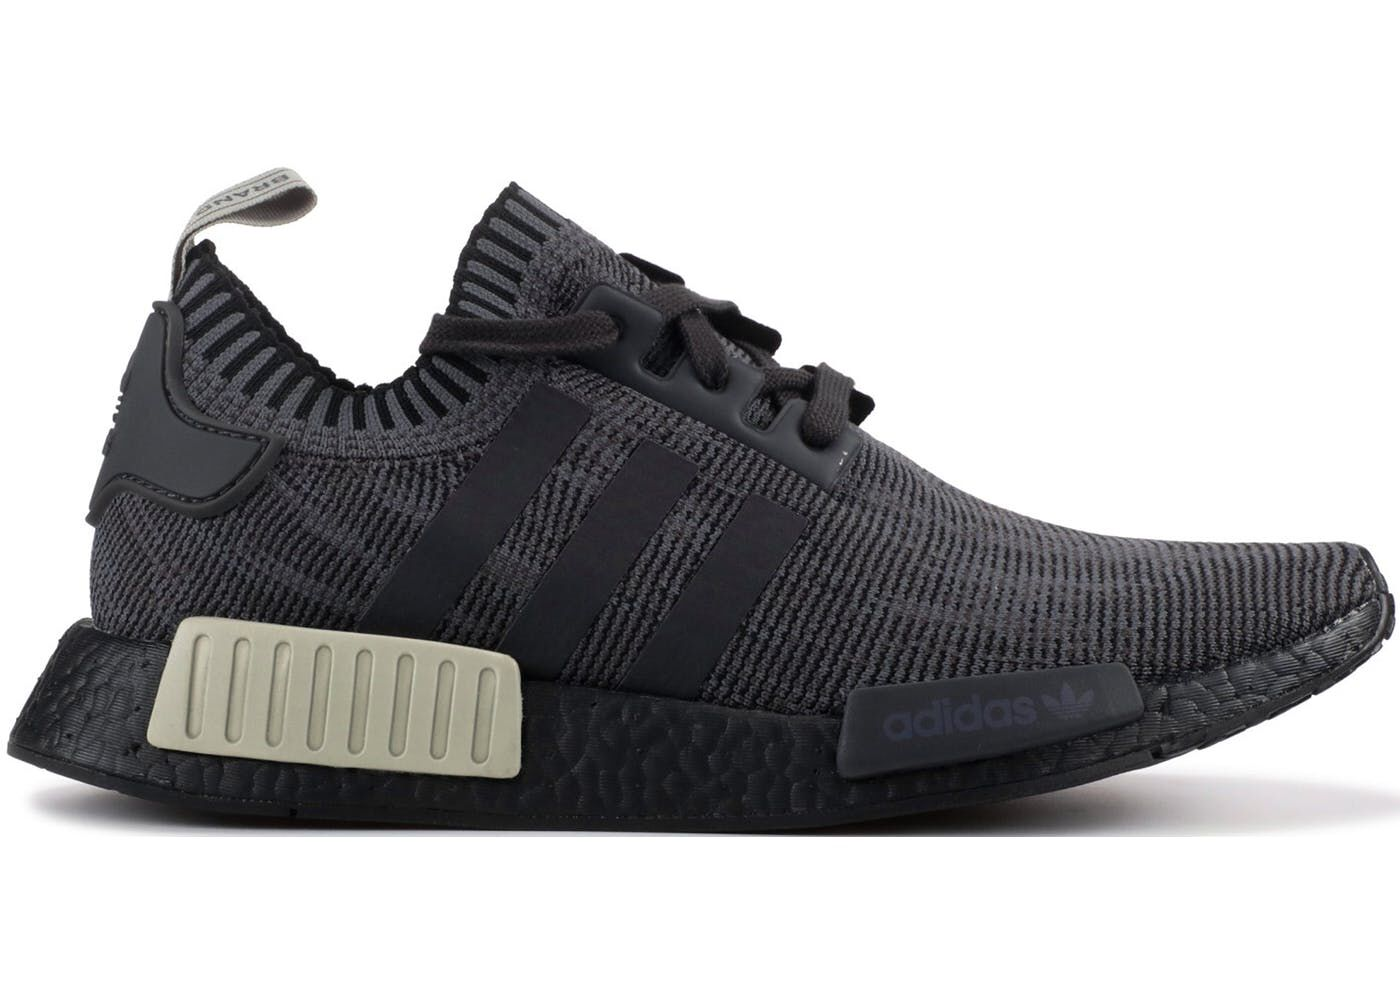 Check out the adidas NMD R1 Black Olive available on StockX